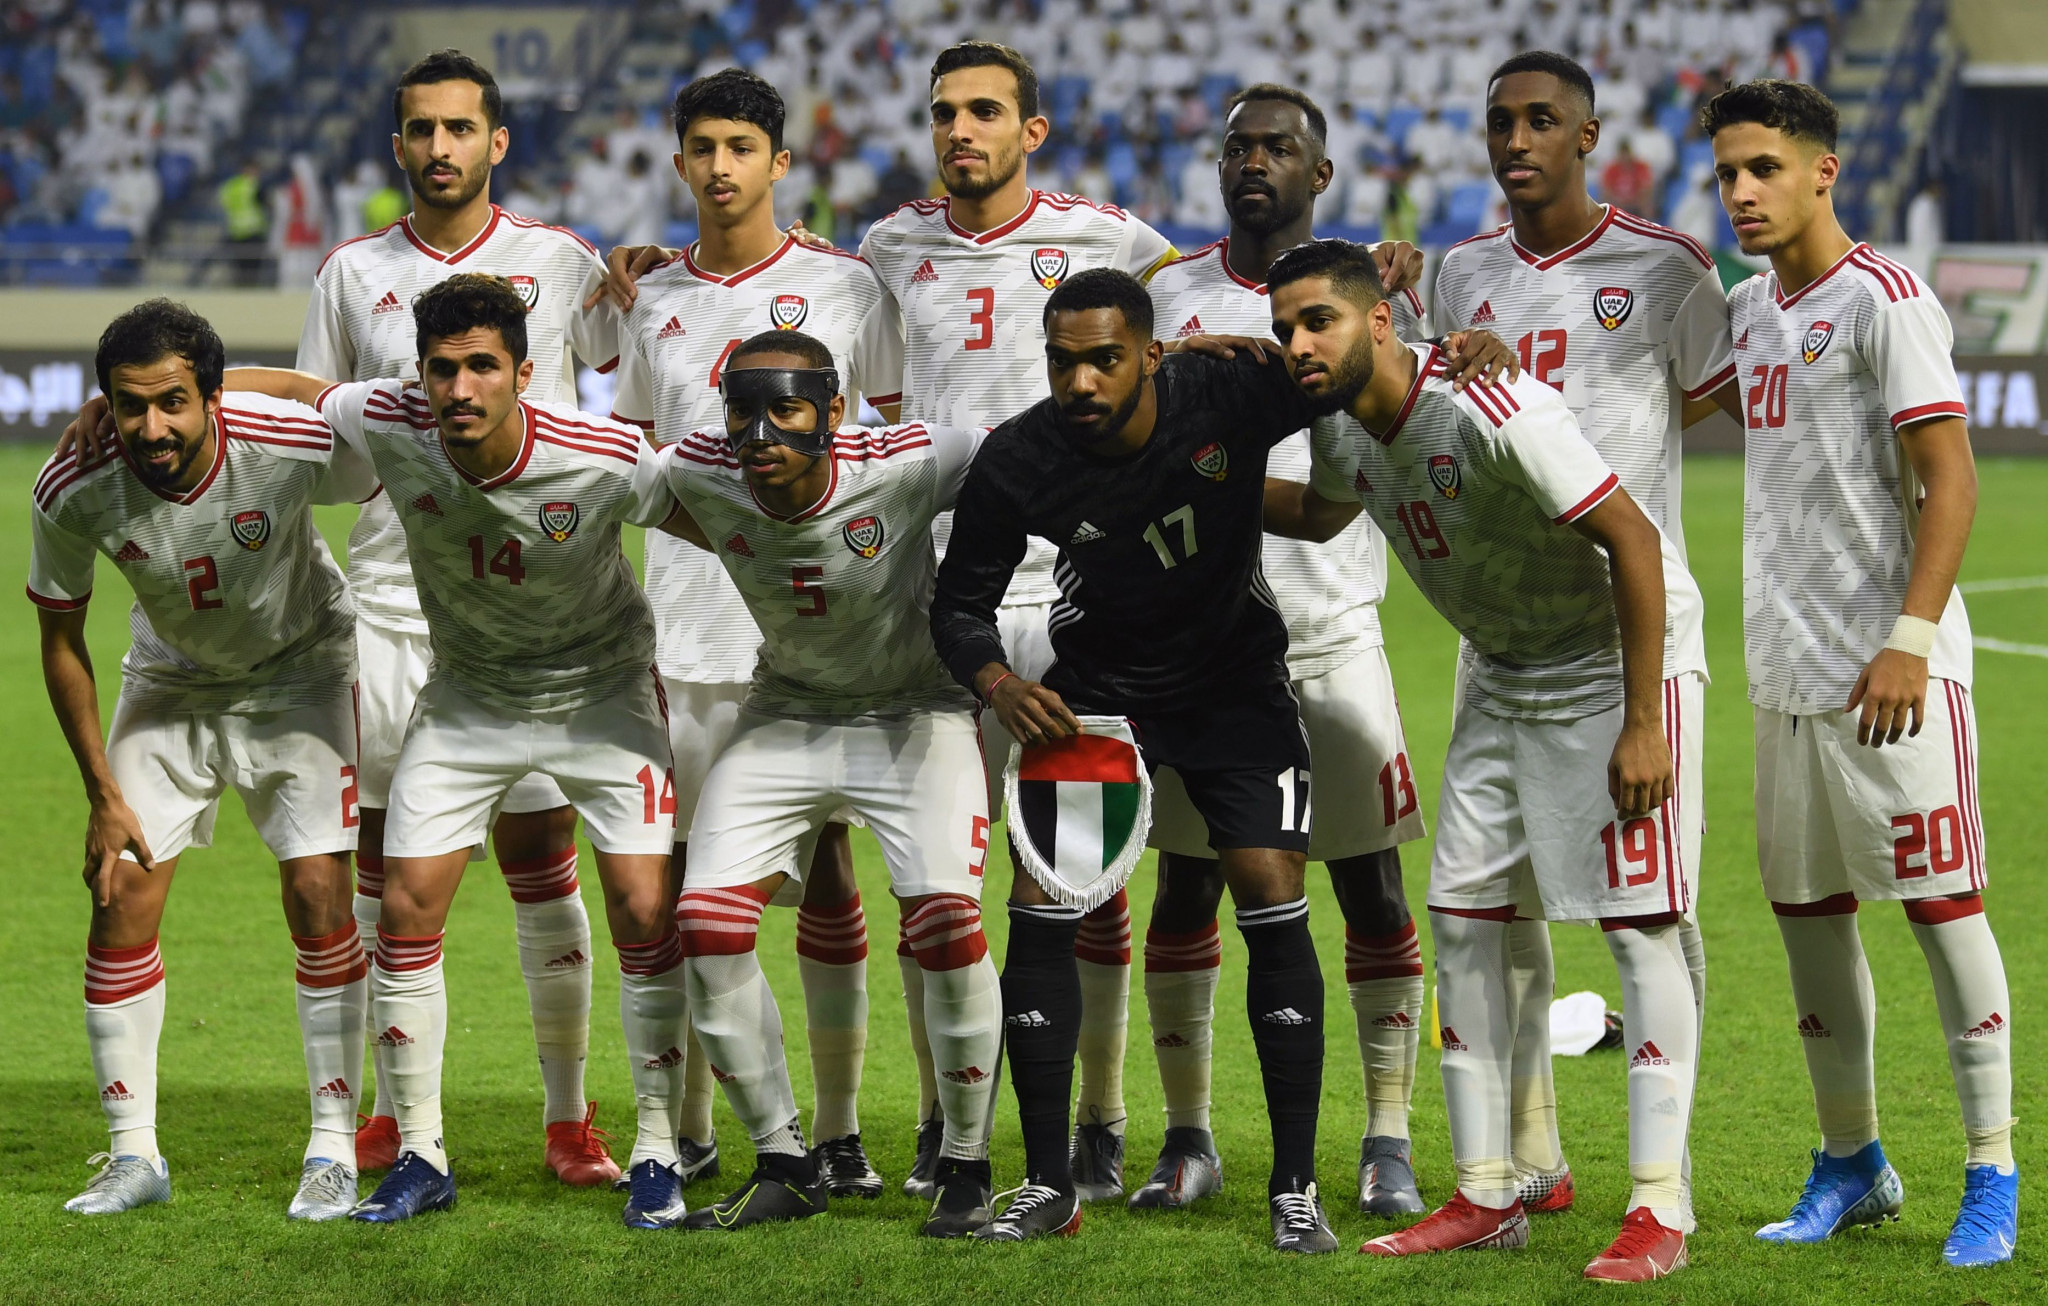 The UAE Football Association has confirmed its qualifiers have been moved to June ©Getty Images